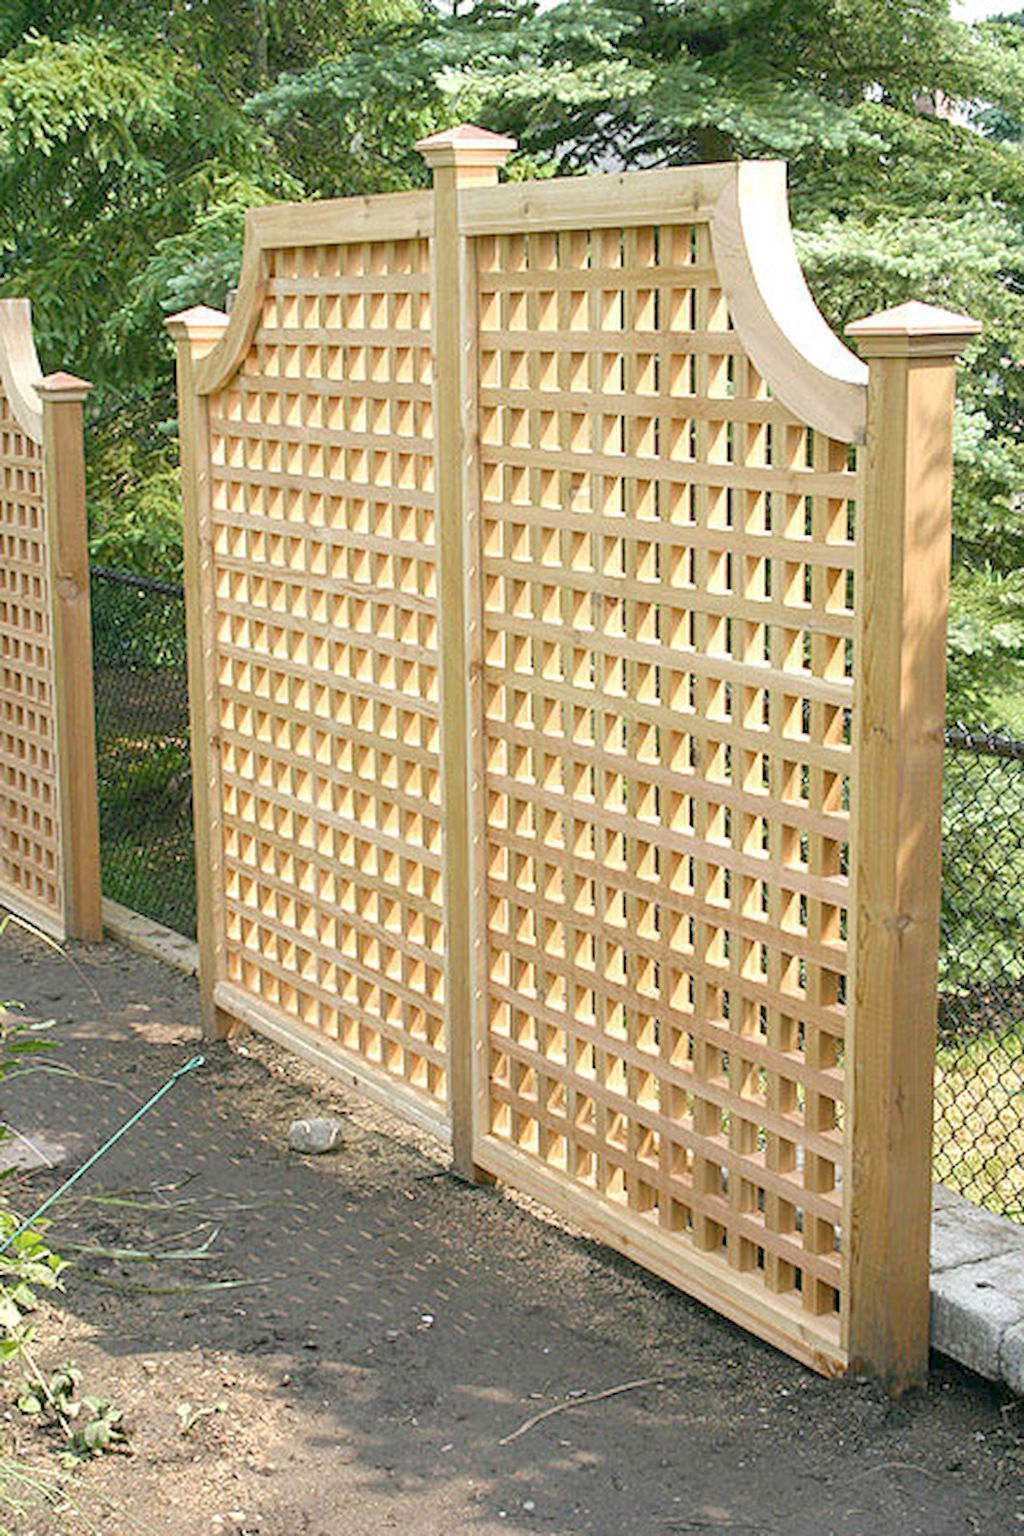 Reliable Adorable Vinyl Fence From Quality Fence Company Privacy Landscaping Backyard Fences Fence Design